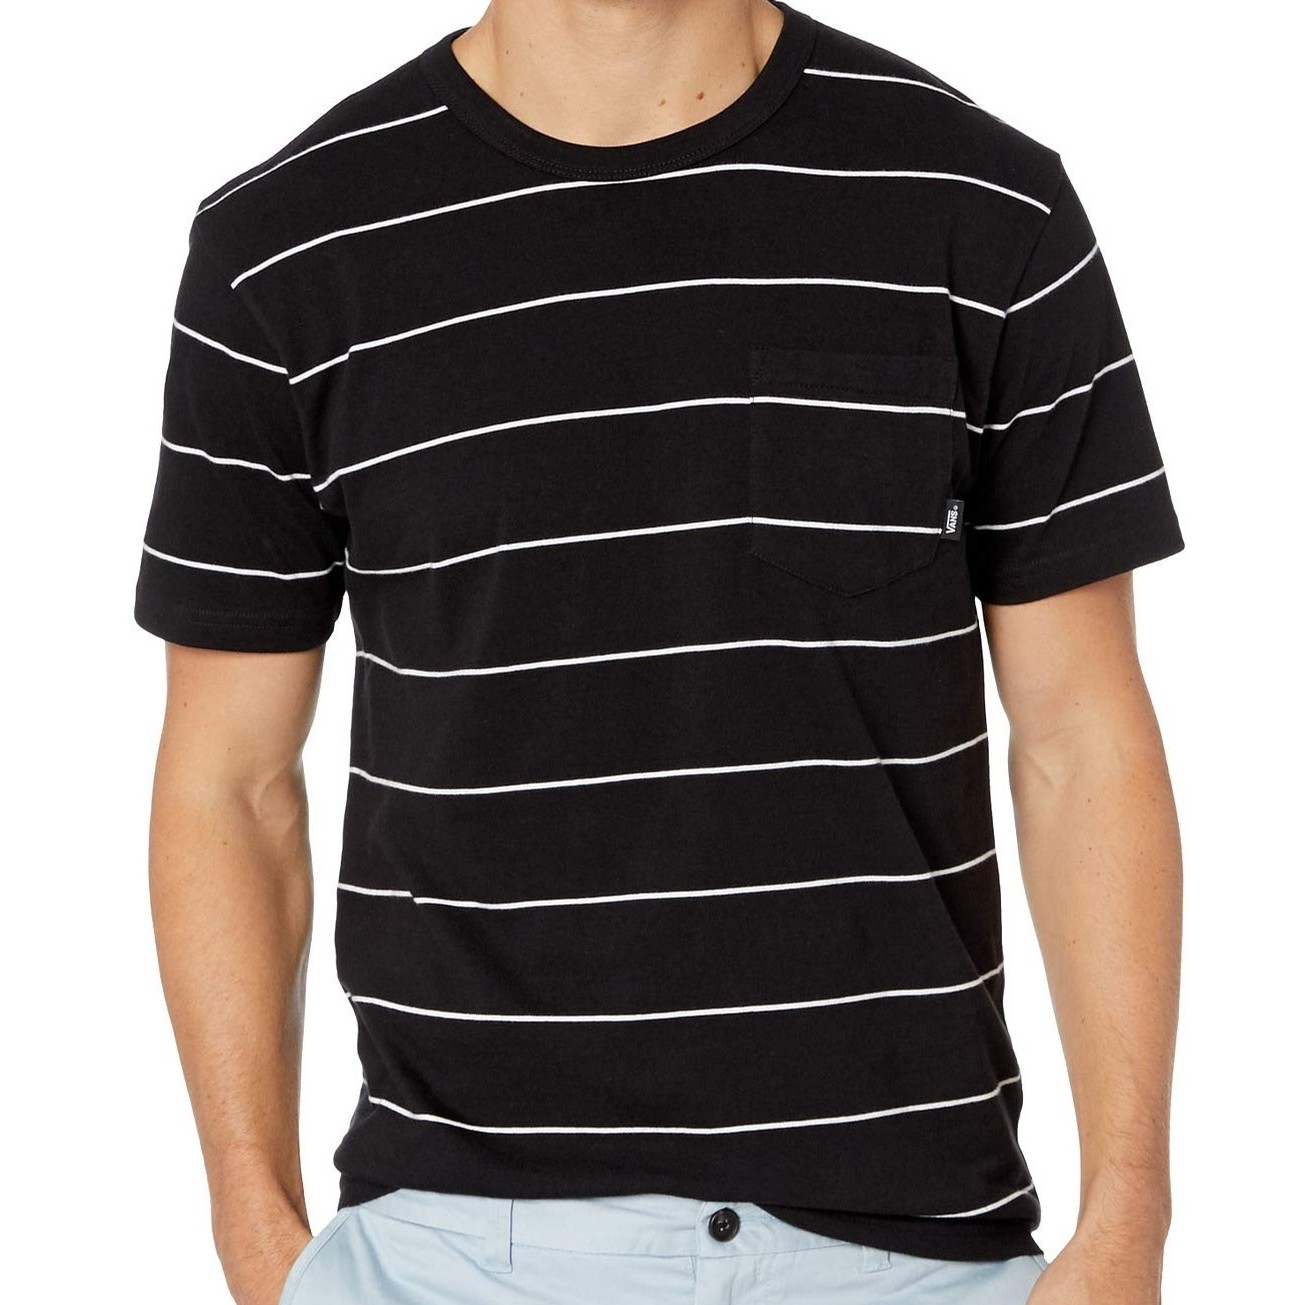 Glenwood Pocket Crew (Black/White)